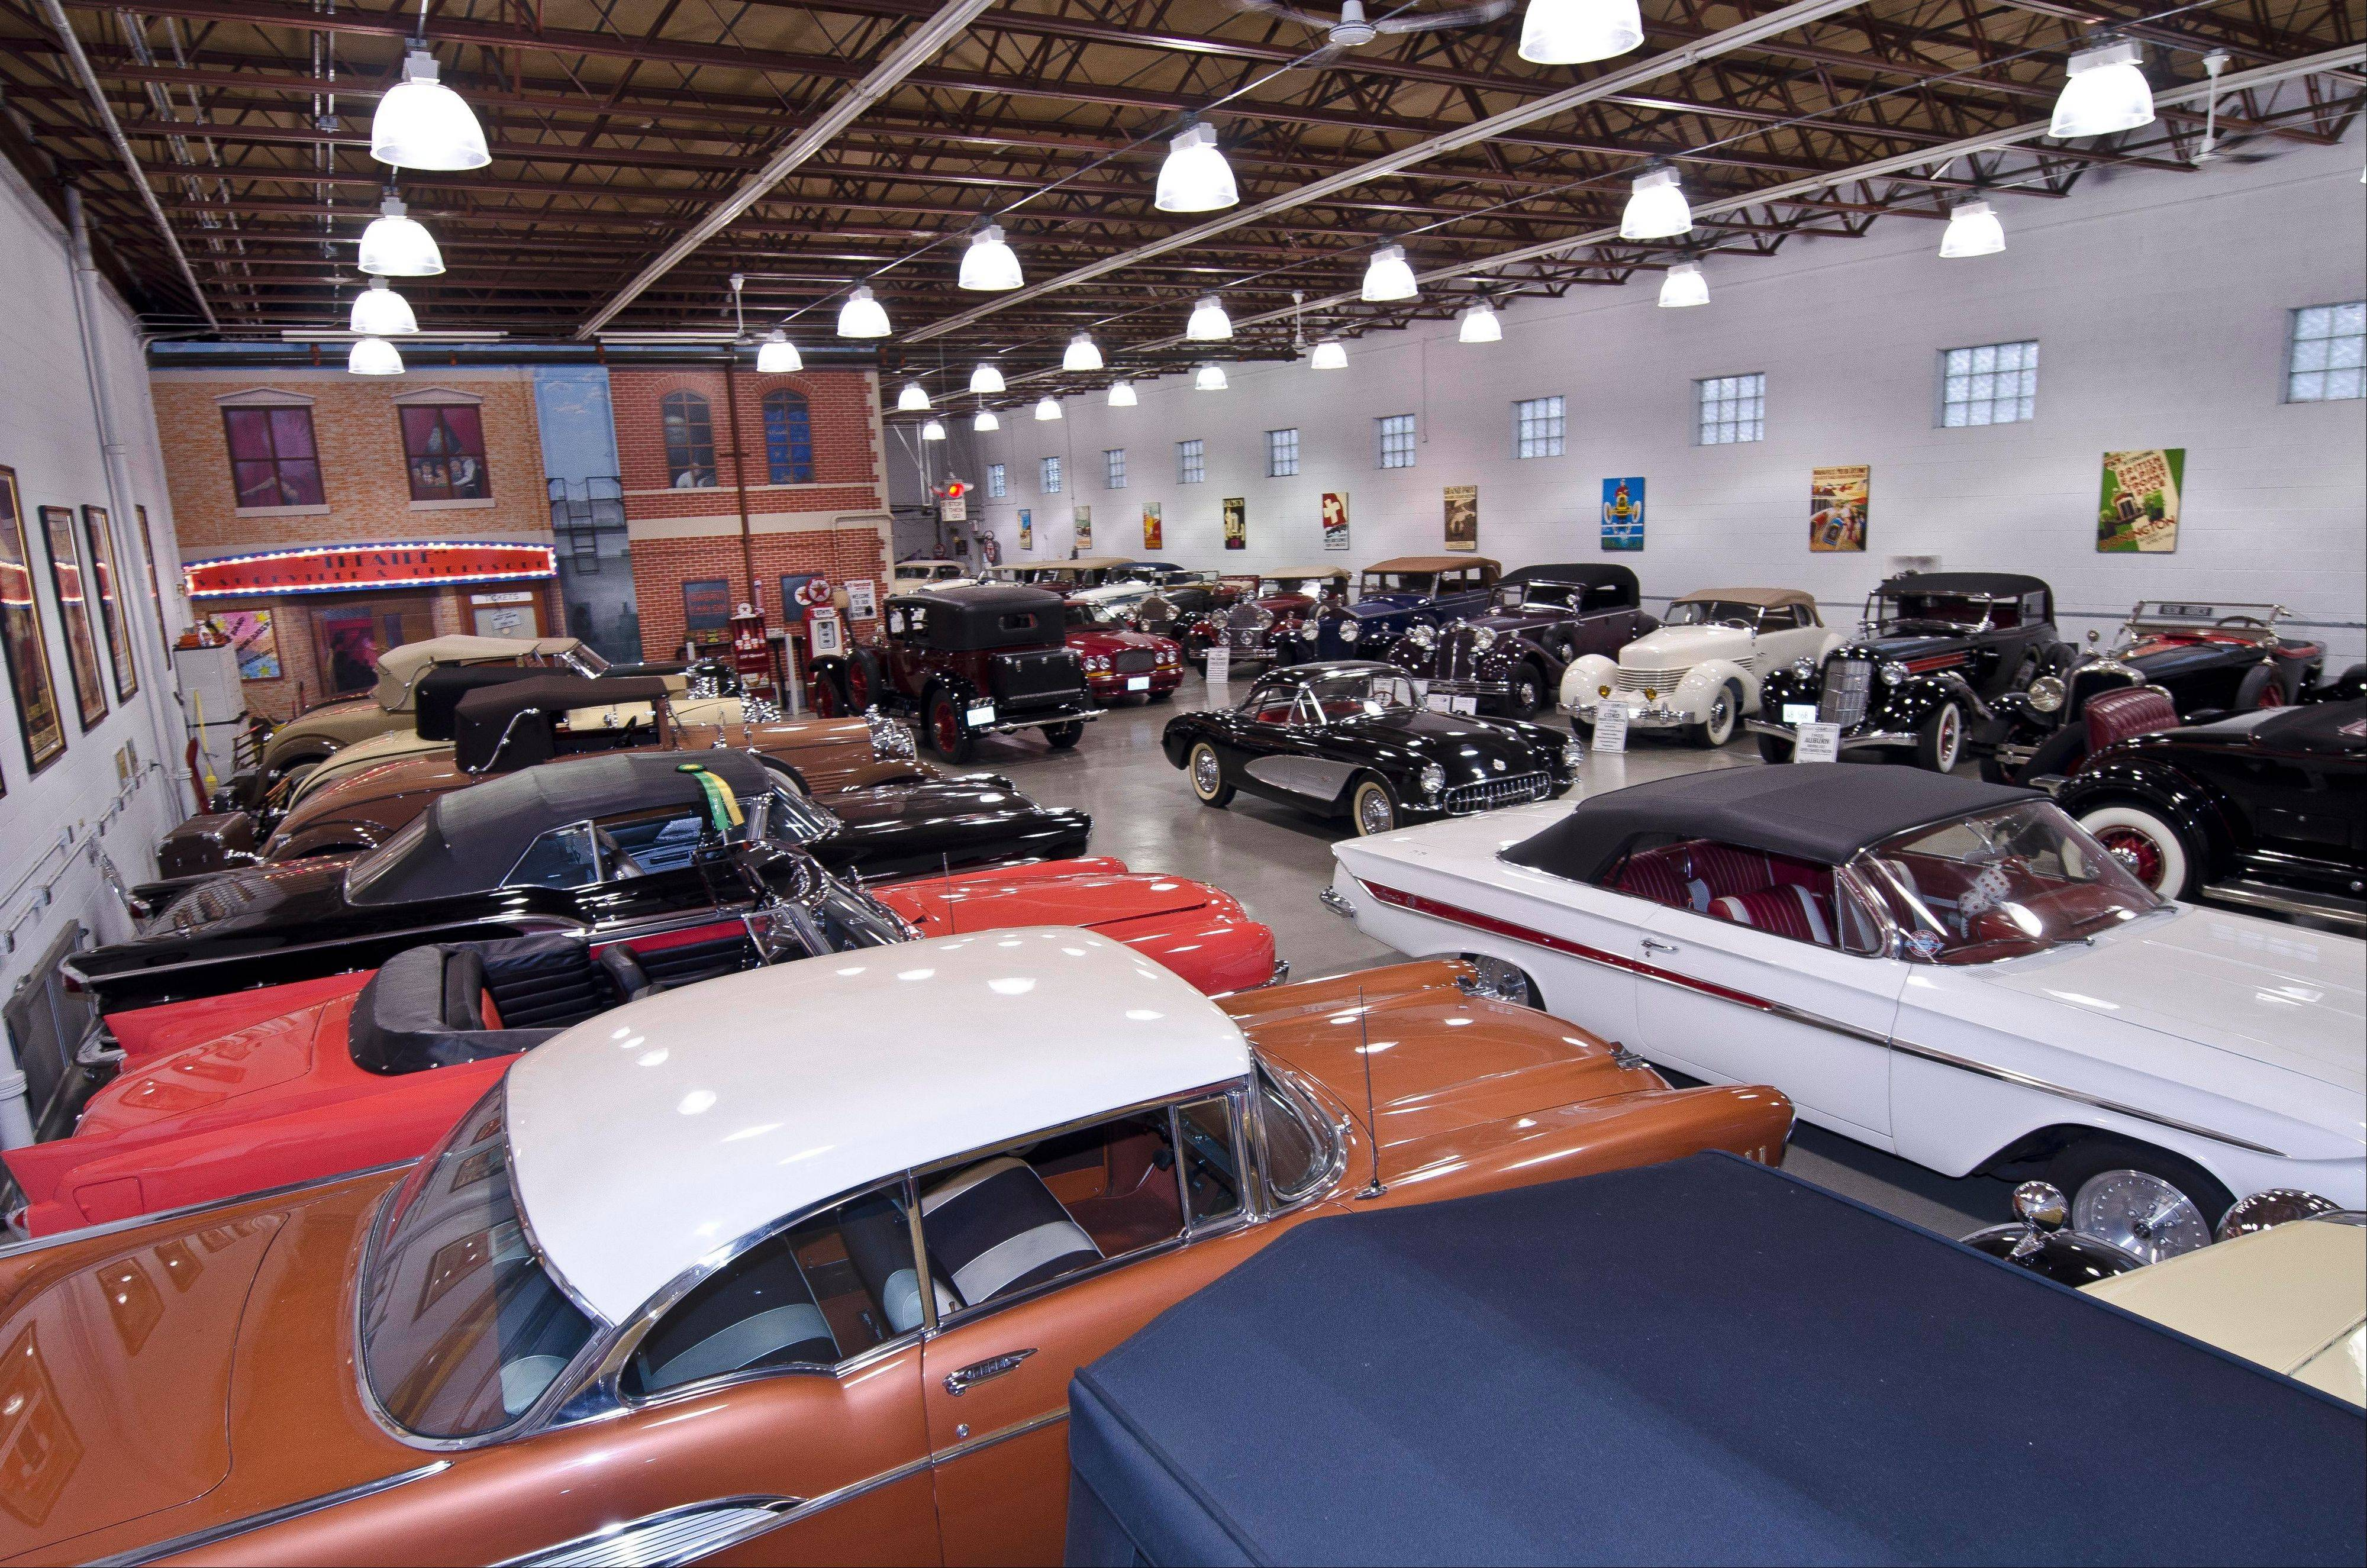 Collection now encompasses 40 cars